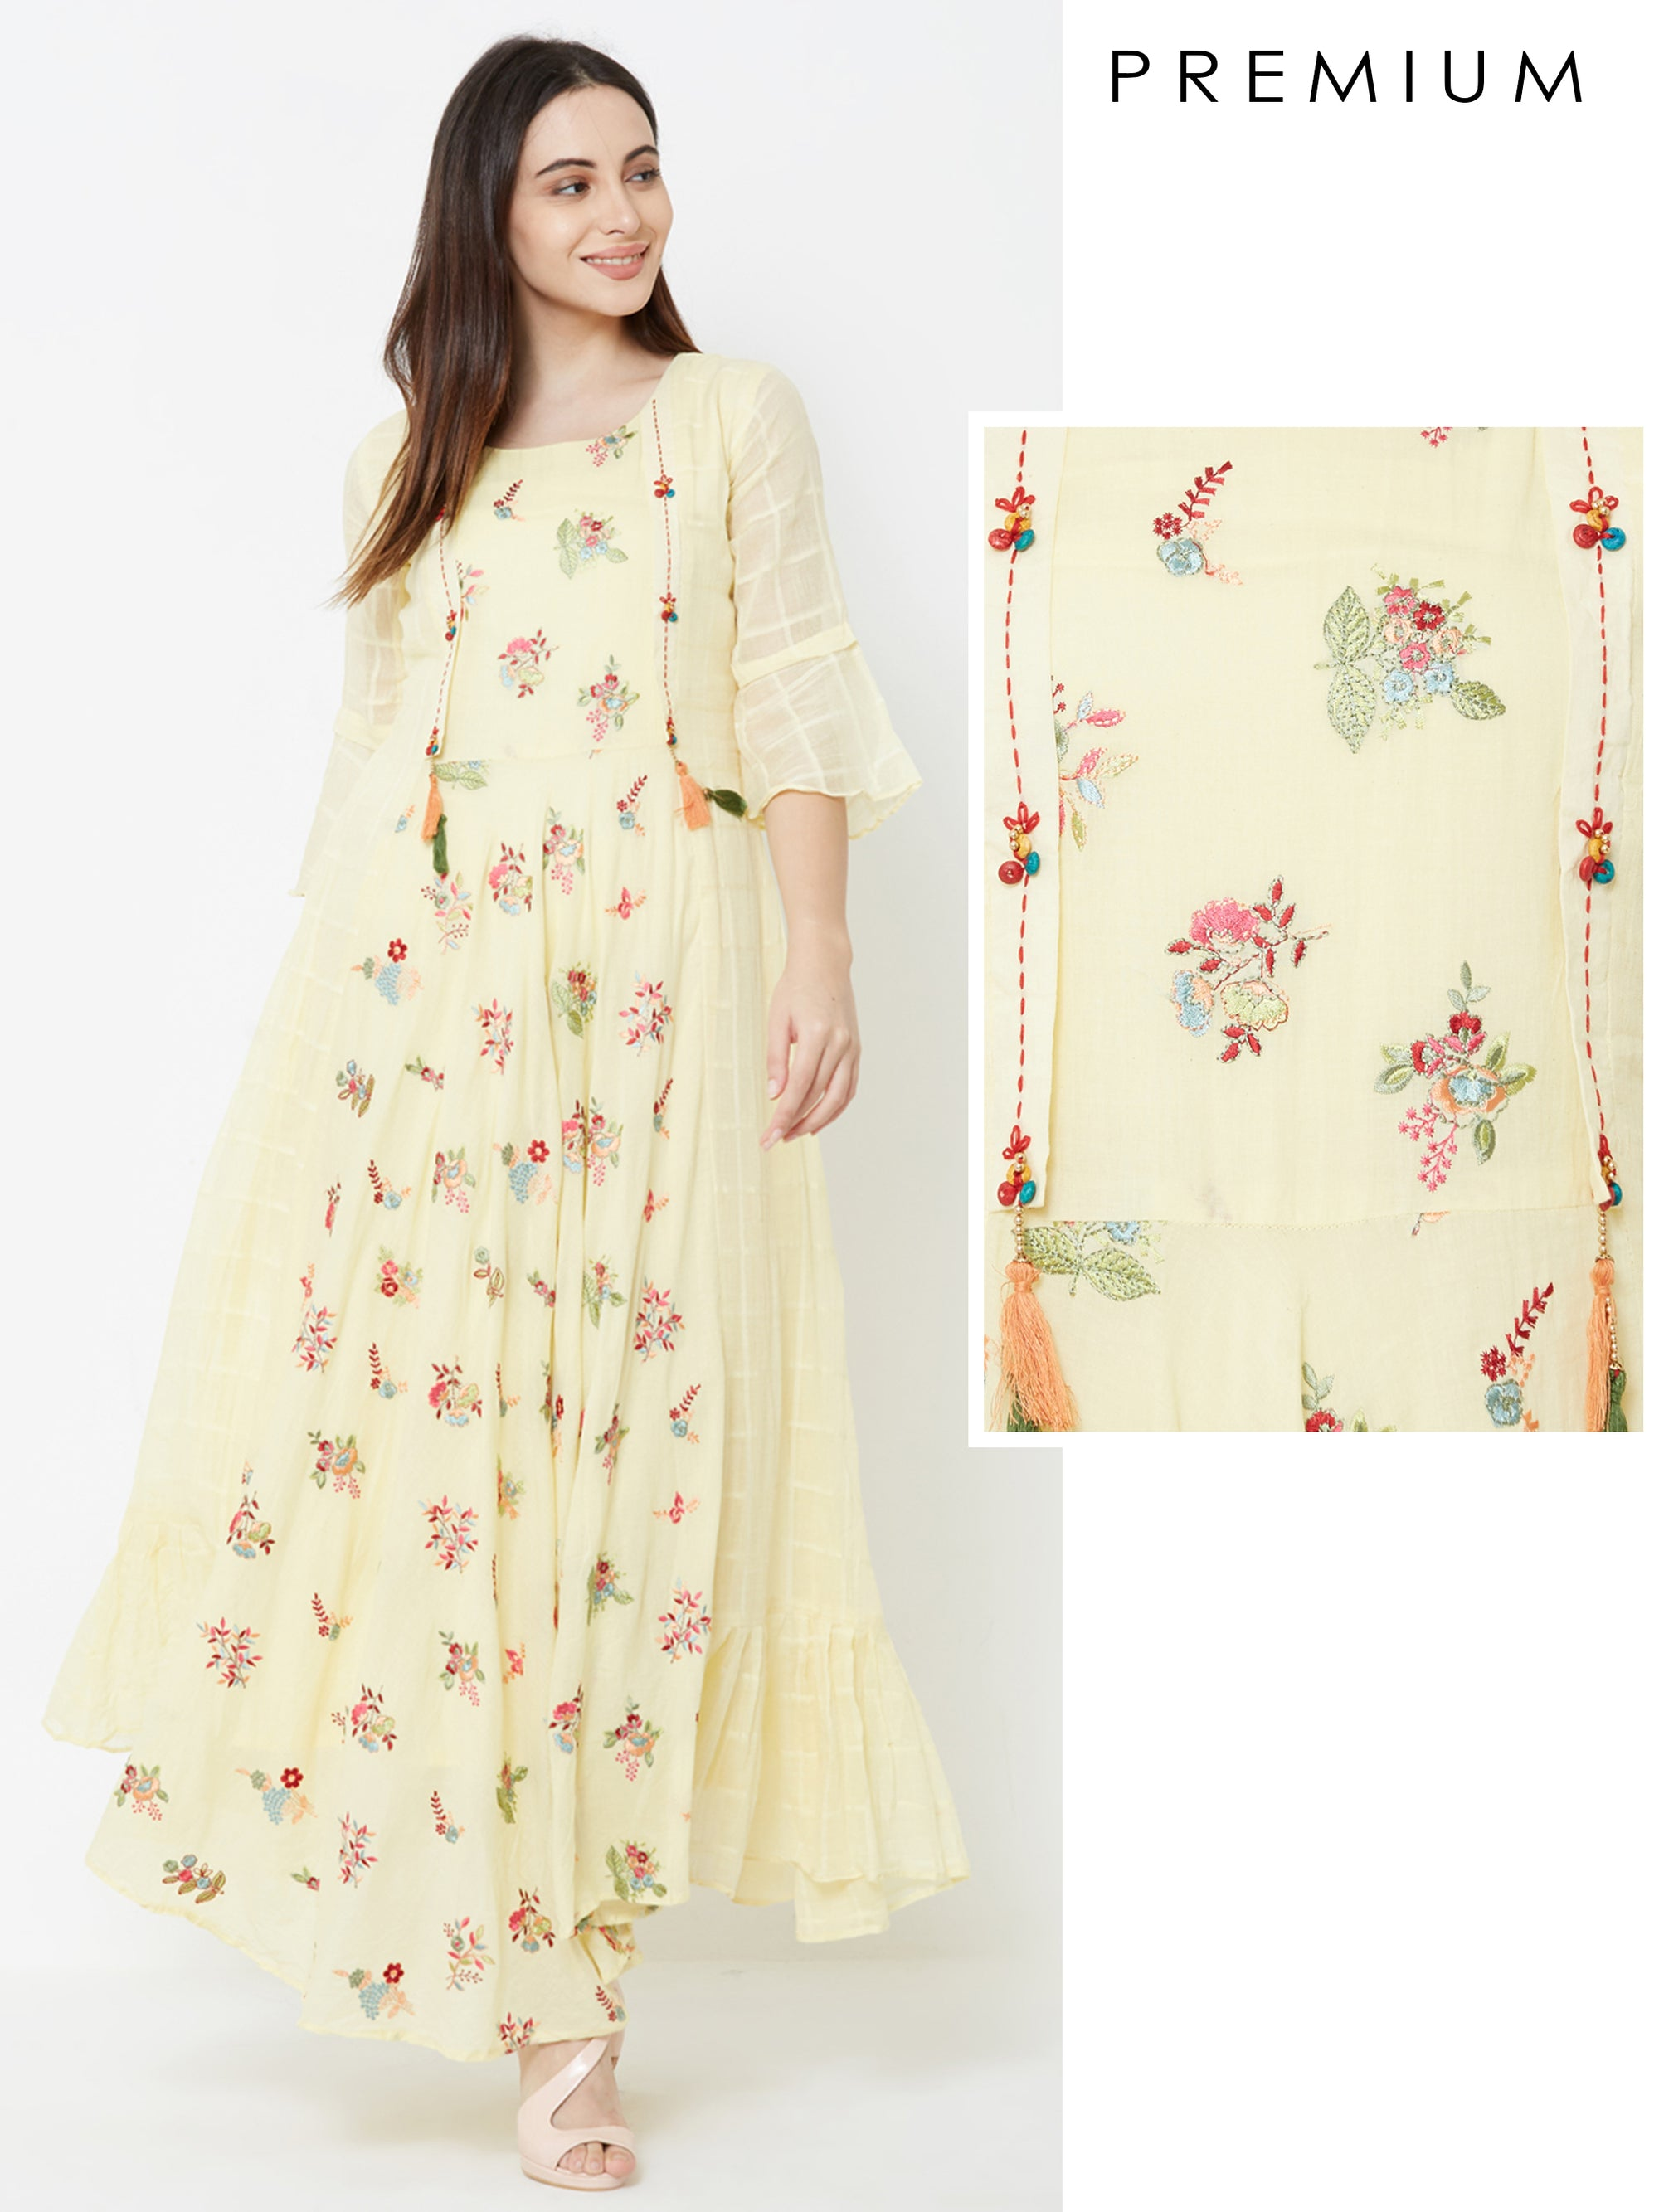 Floral printed and Tassel Embroidered A-line Maxi – Lemon Yellow